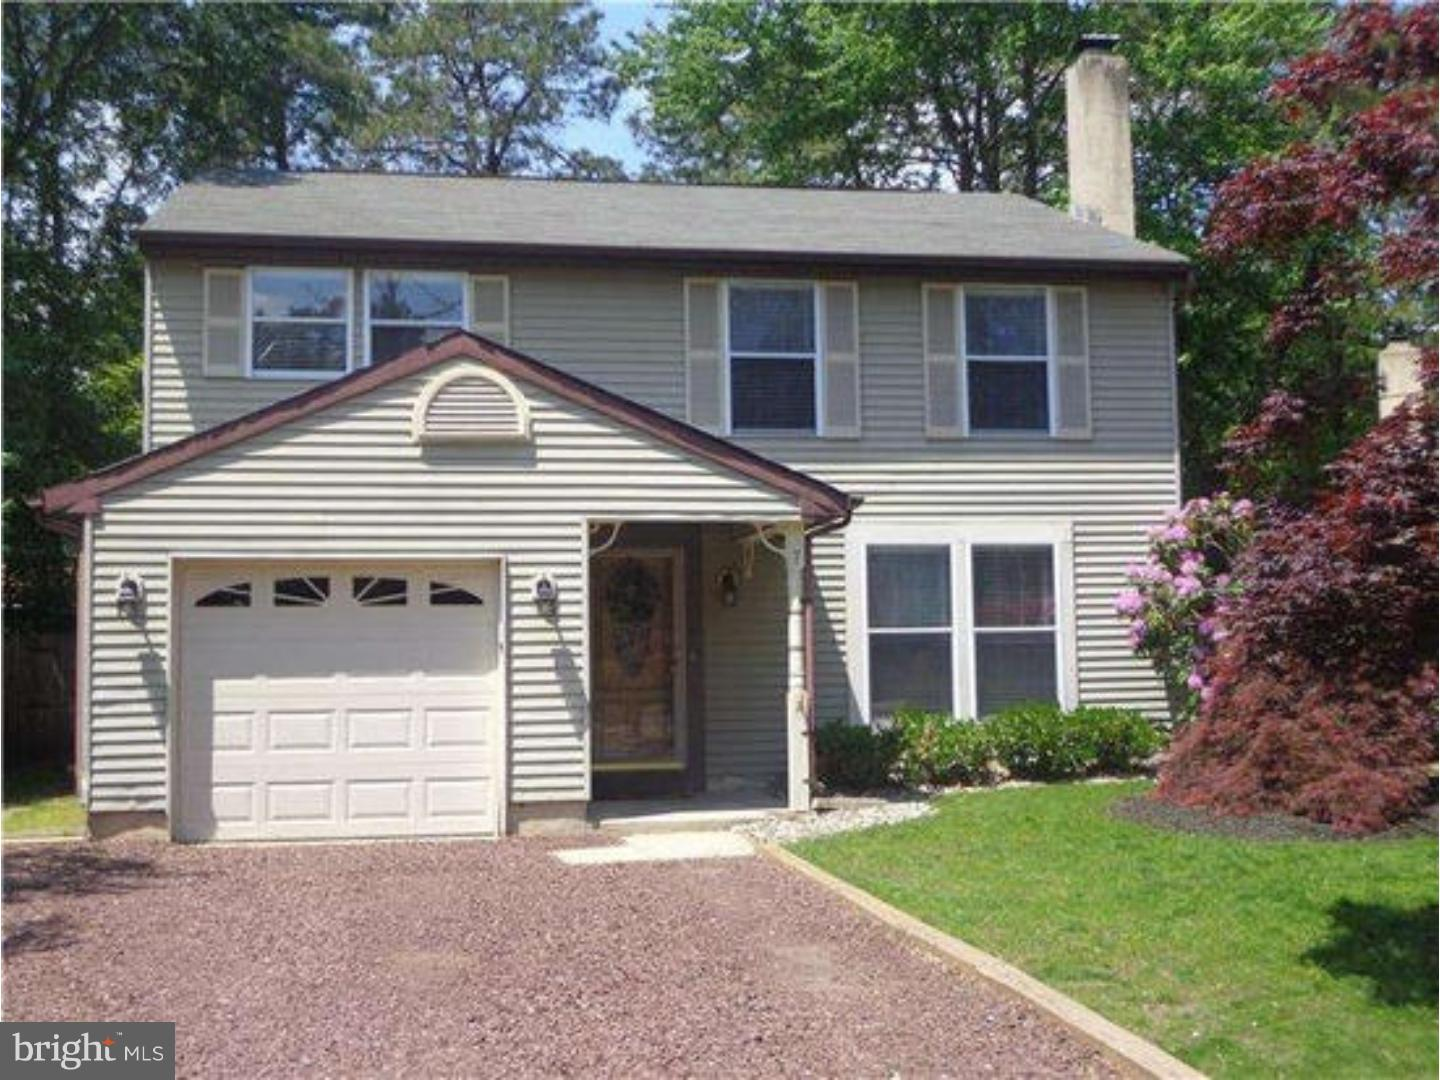 Single Family Home for Sale at 7 JACKSON CT W Evesham Twp, New Jersey 08053 United States